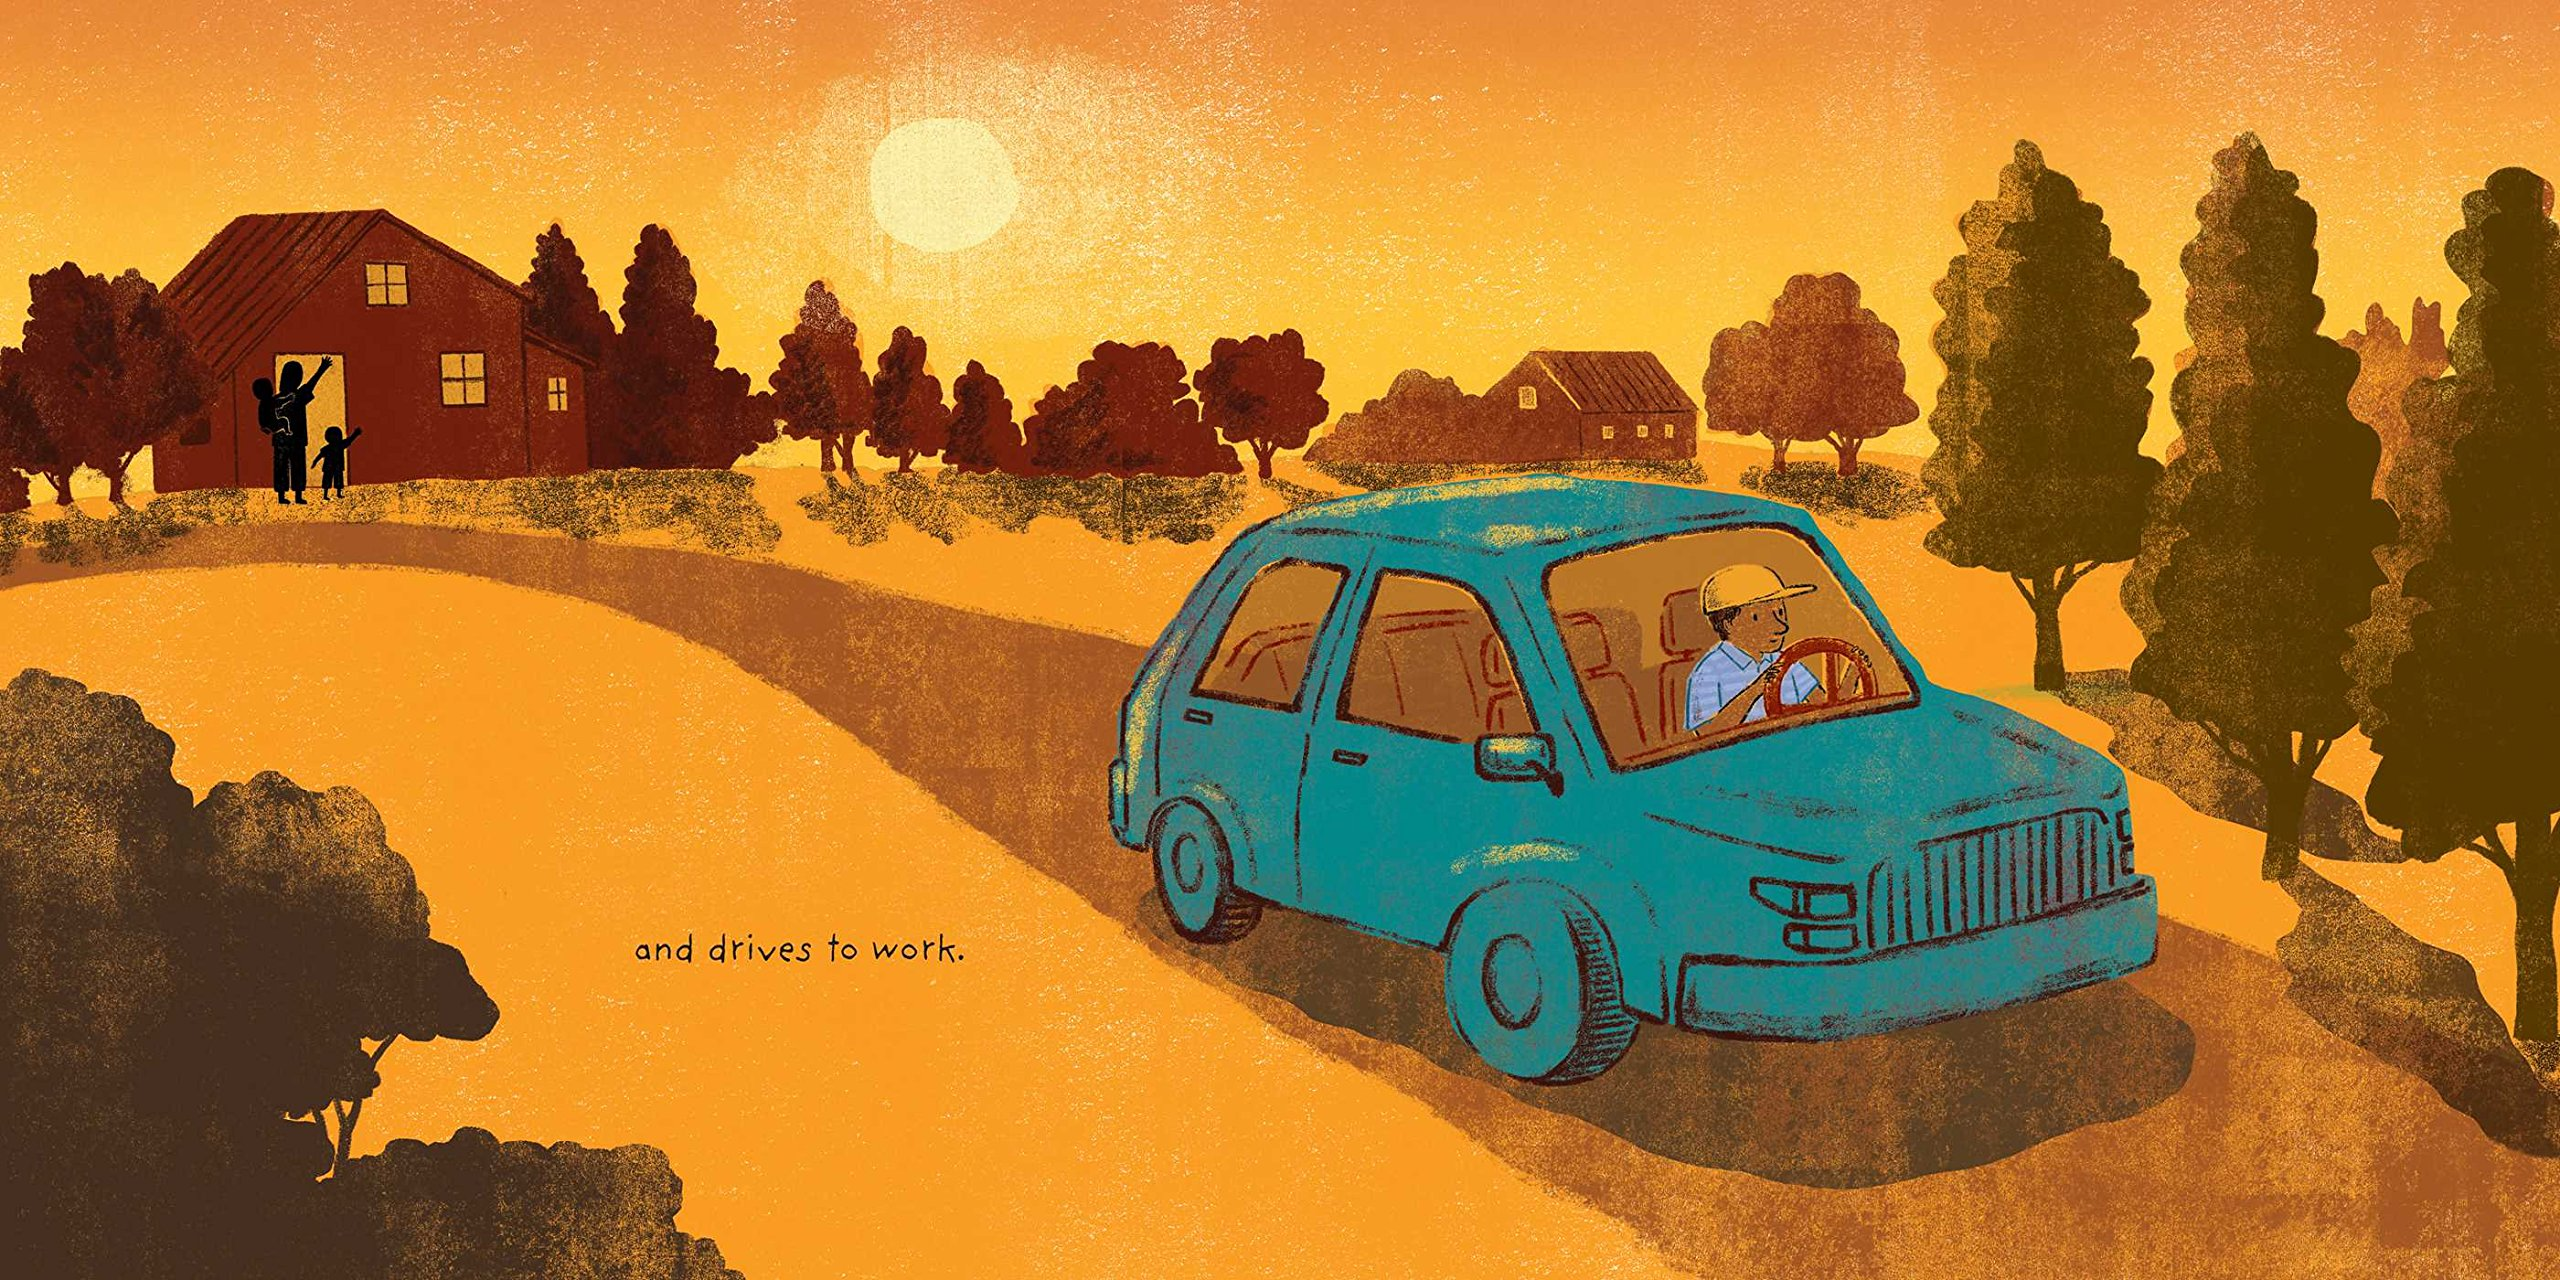 celebrate-picture-books-picture-book-review-kitten-and-the-night-watchman-driving-to-work